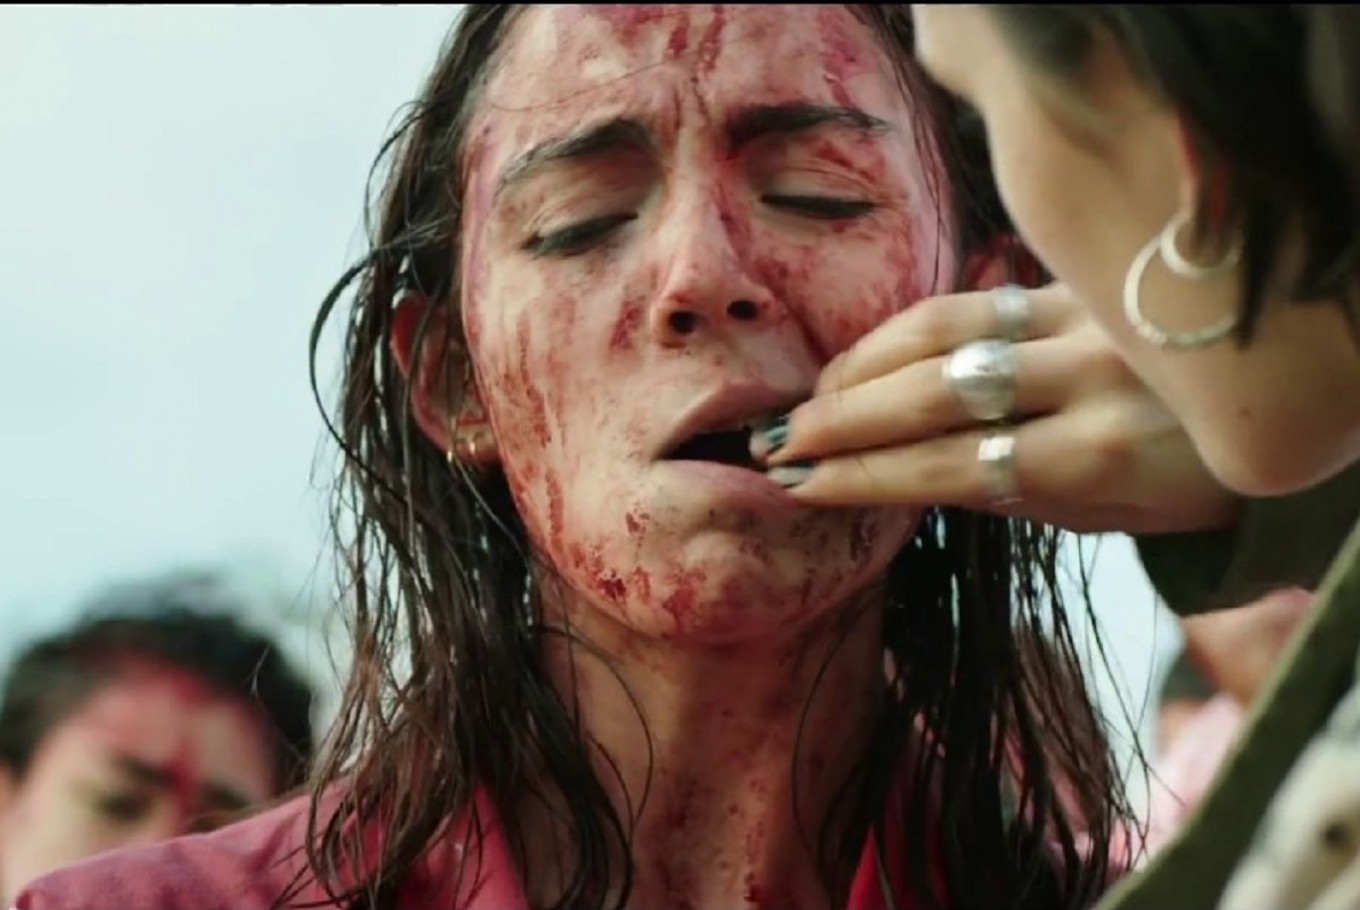 'Raw': a blood-soaked coming-of-age flick